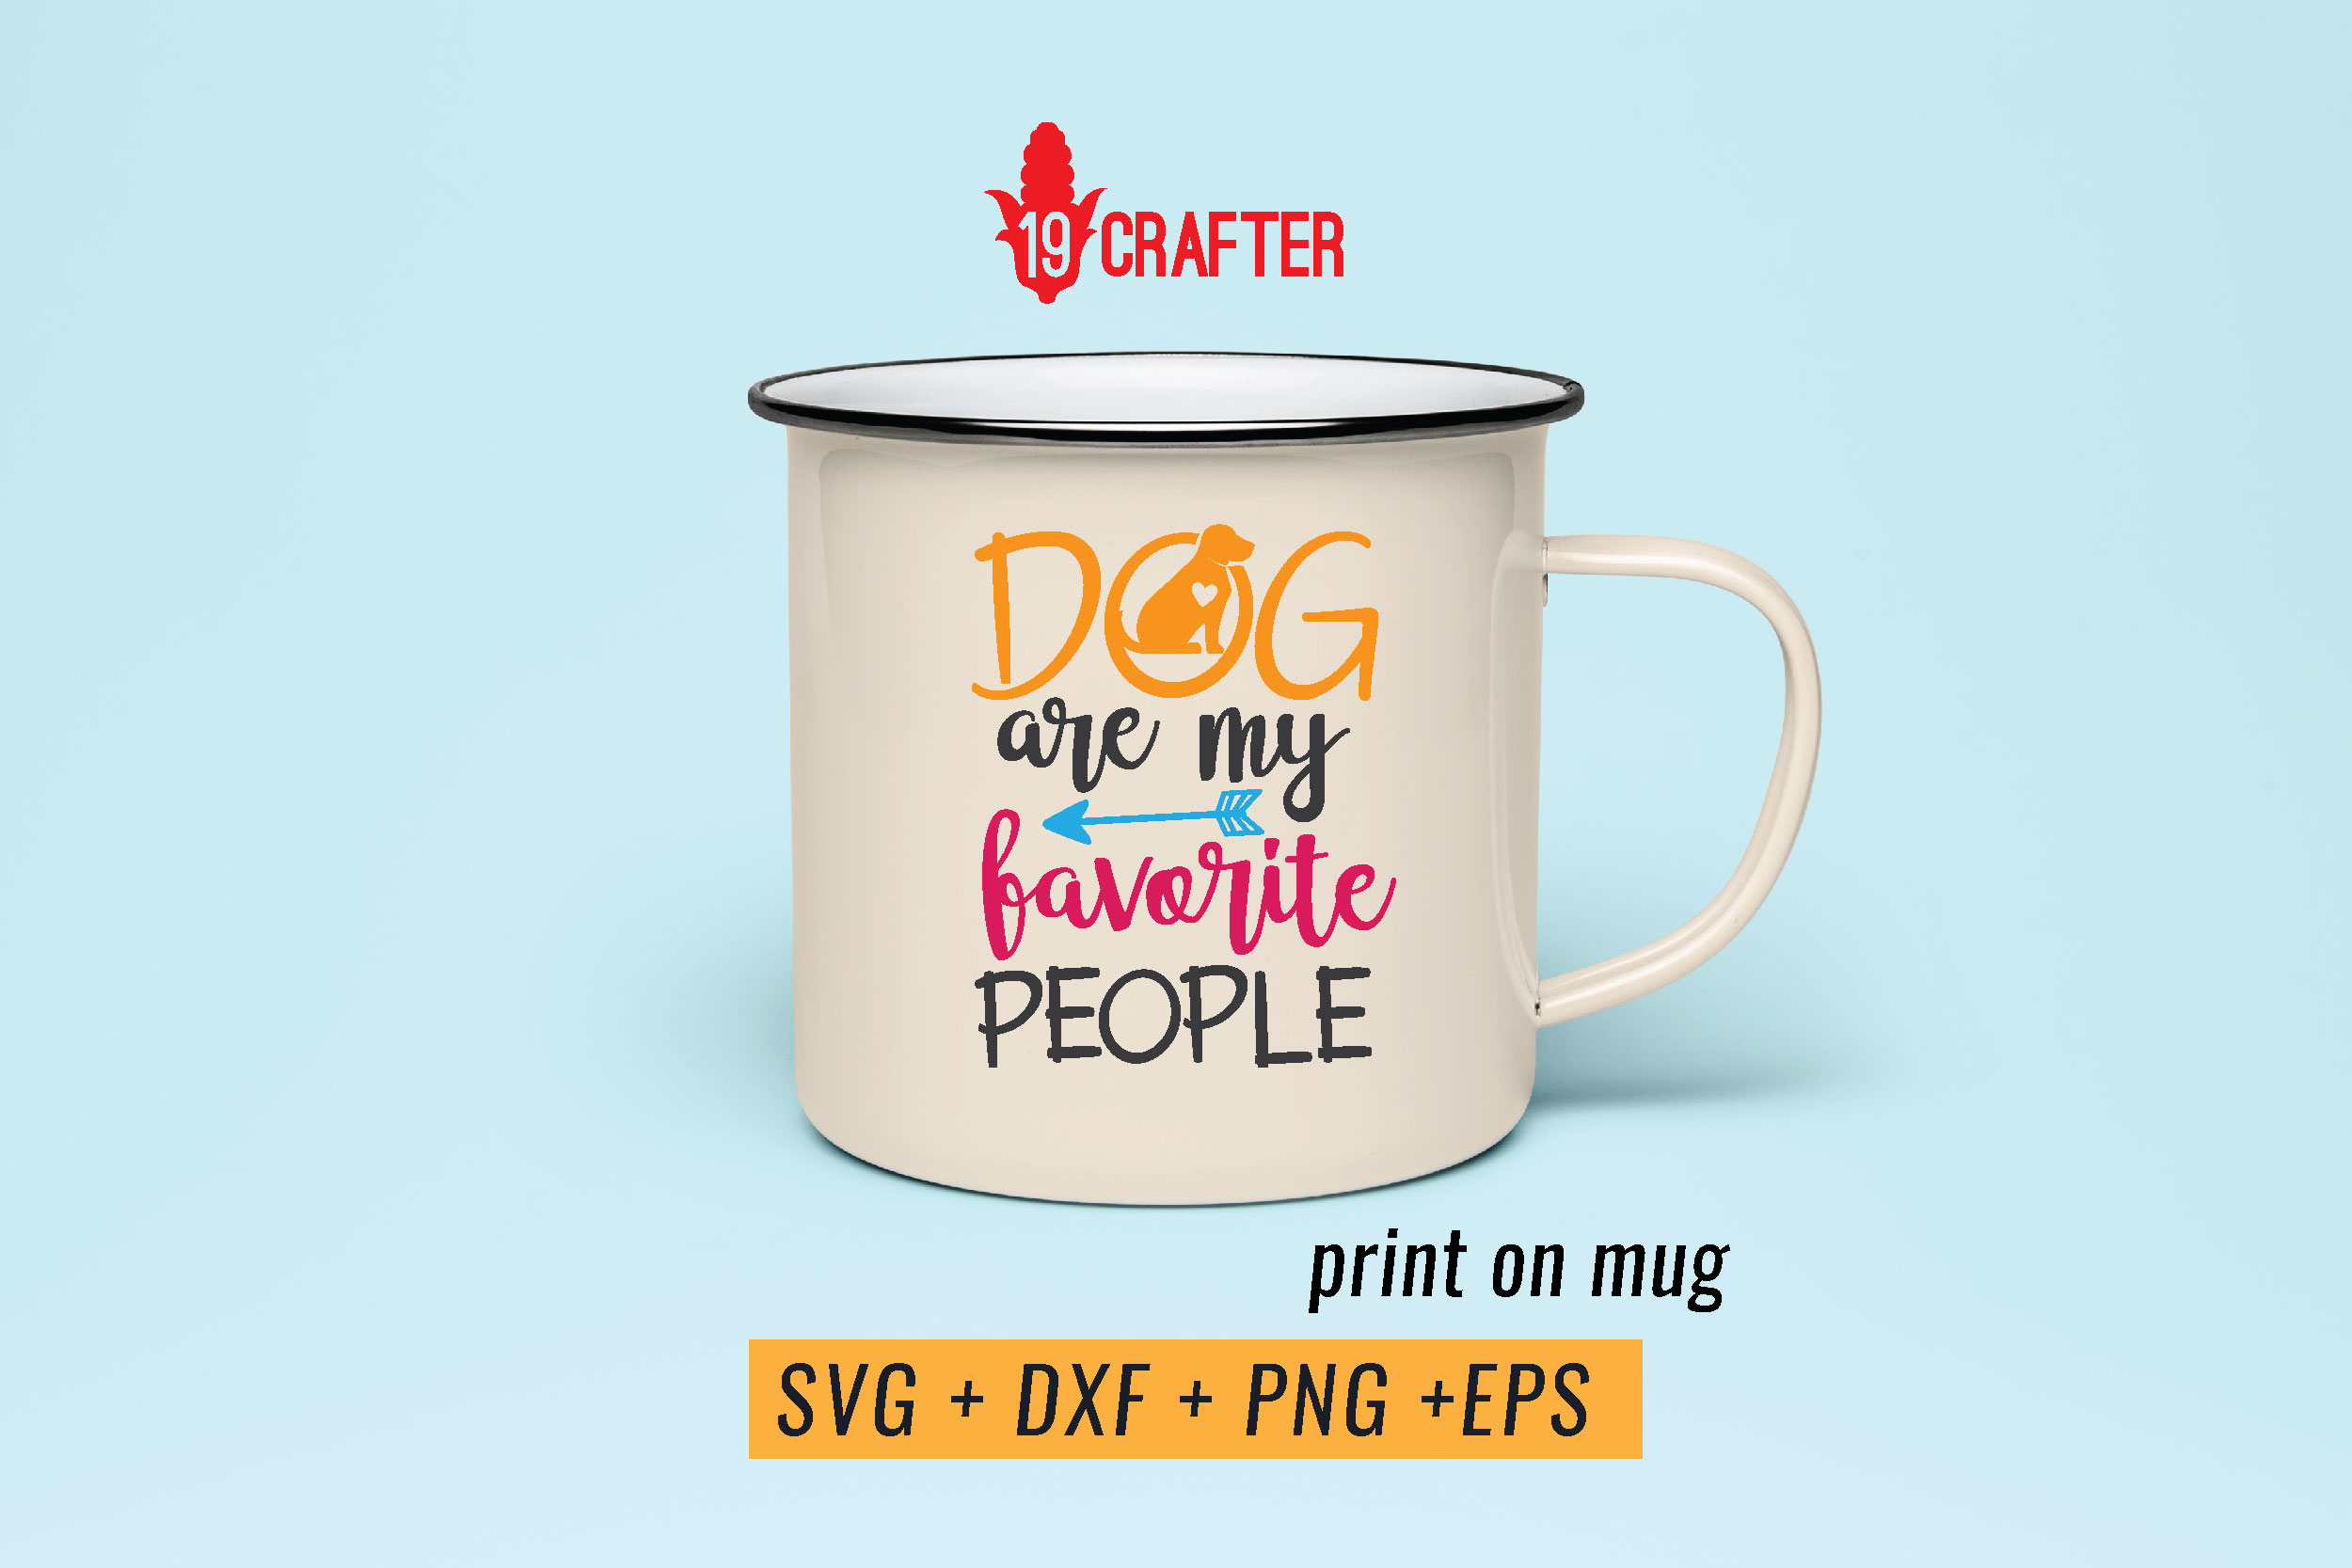 dog are my favorite people svg dxf png eps example image 4